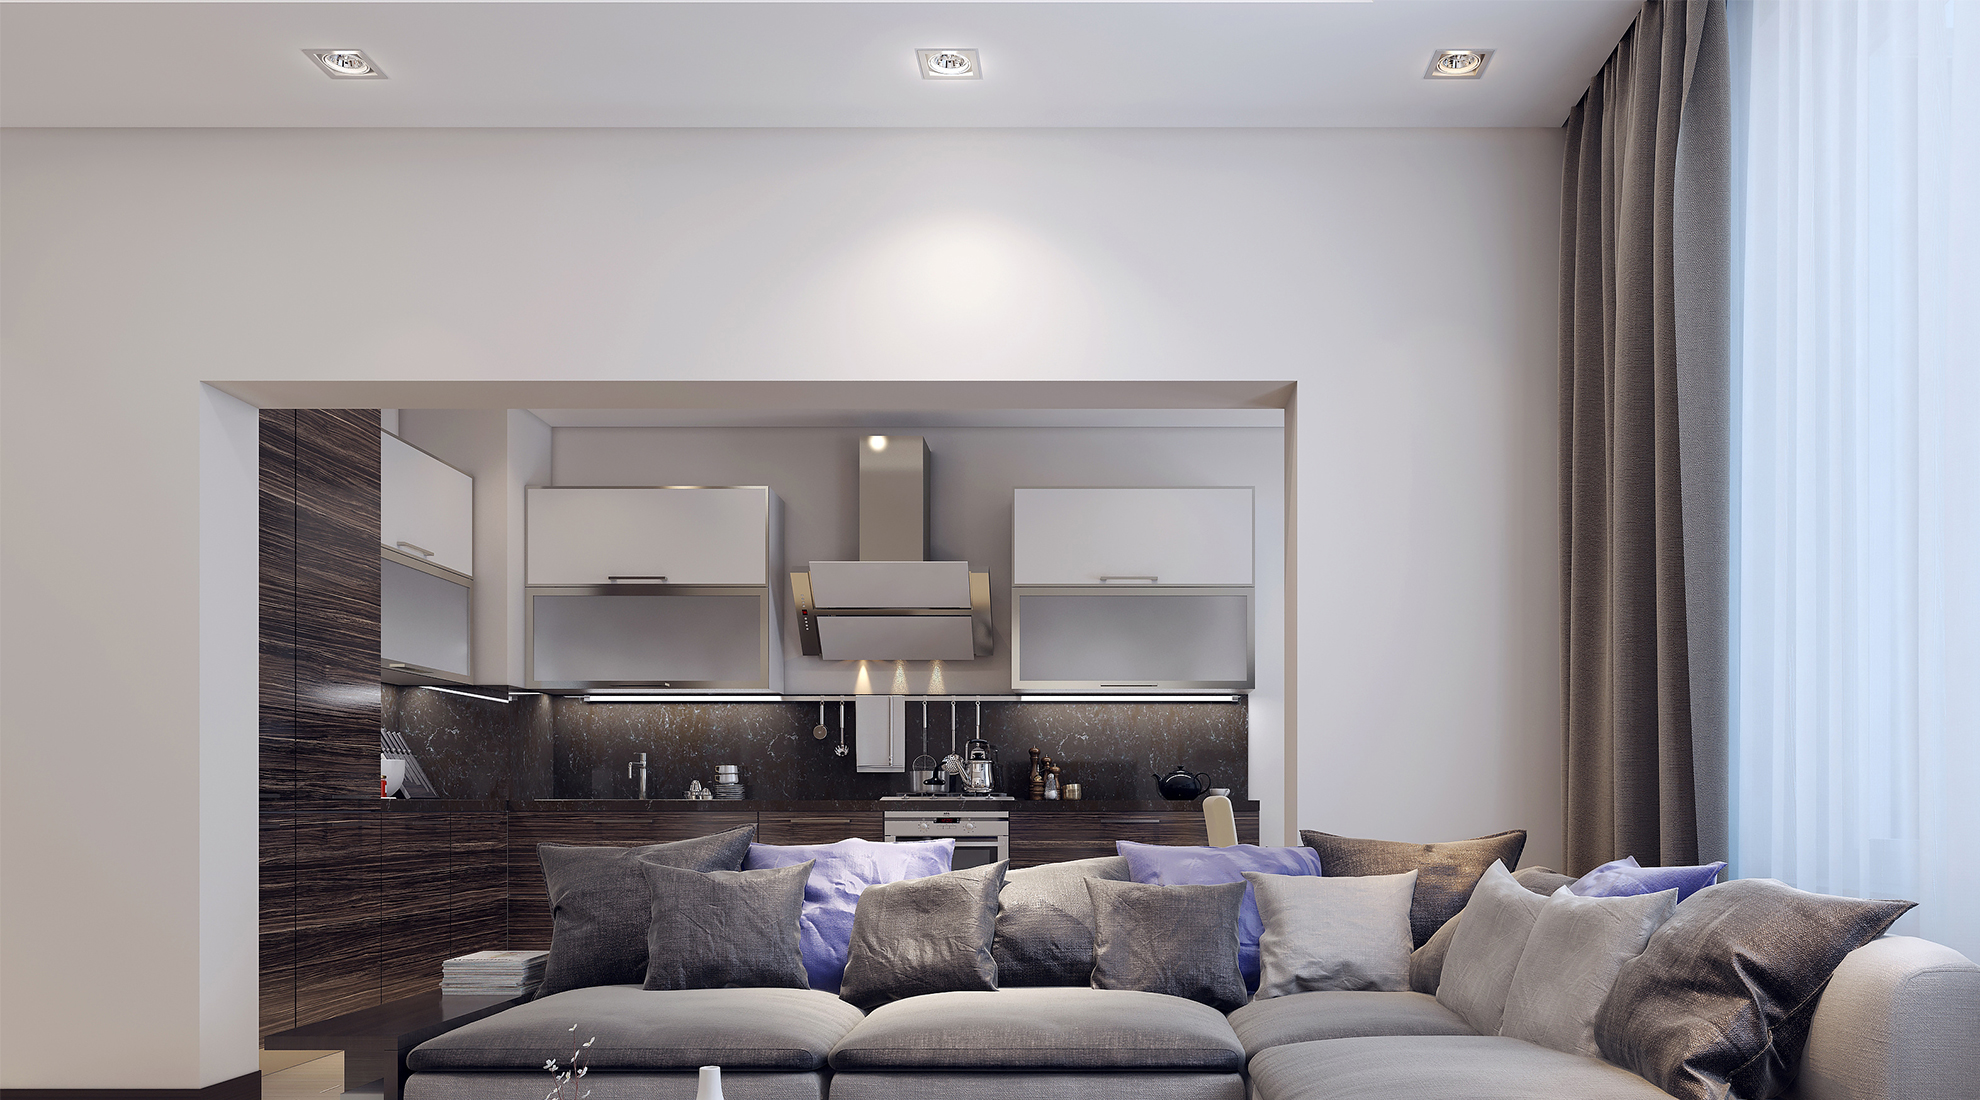 Excellent Use of Recessed Lighting in Home | VGK Lighting ...